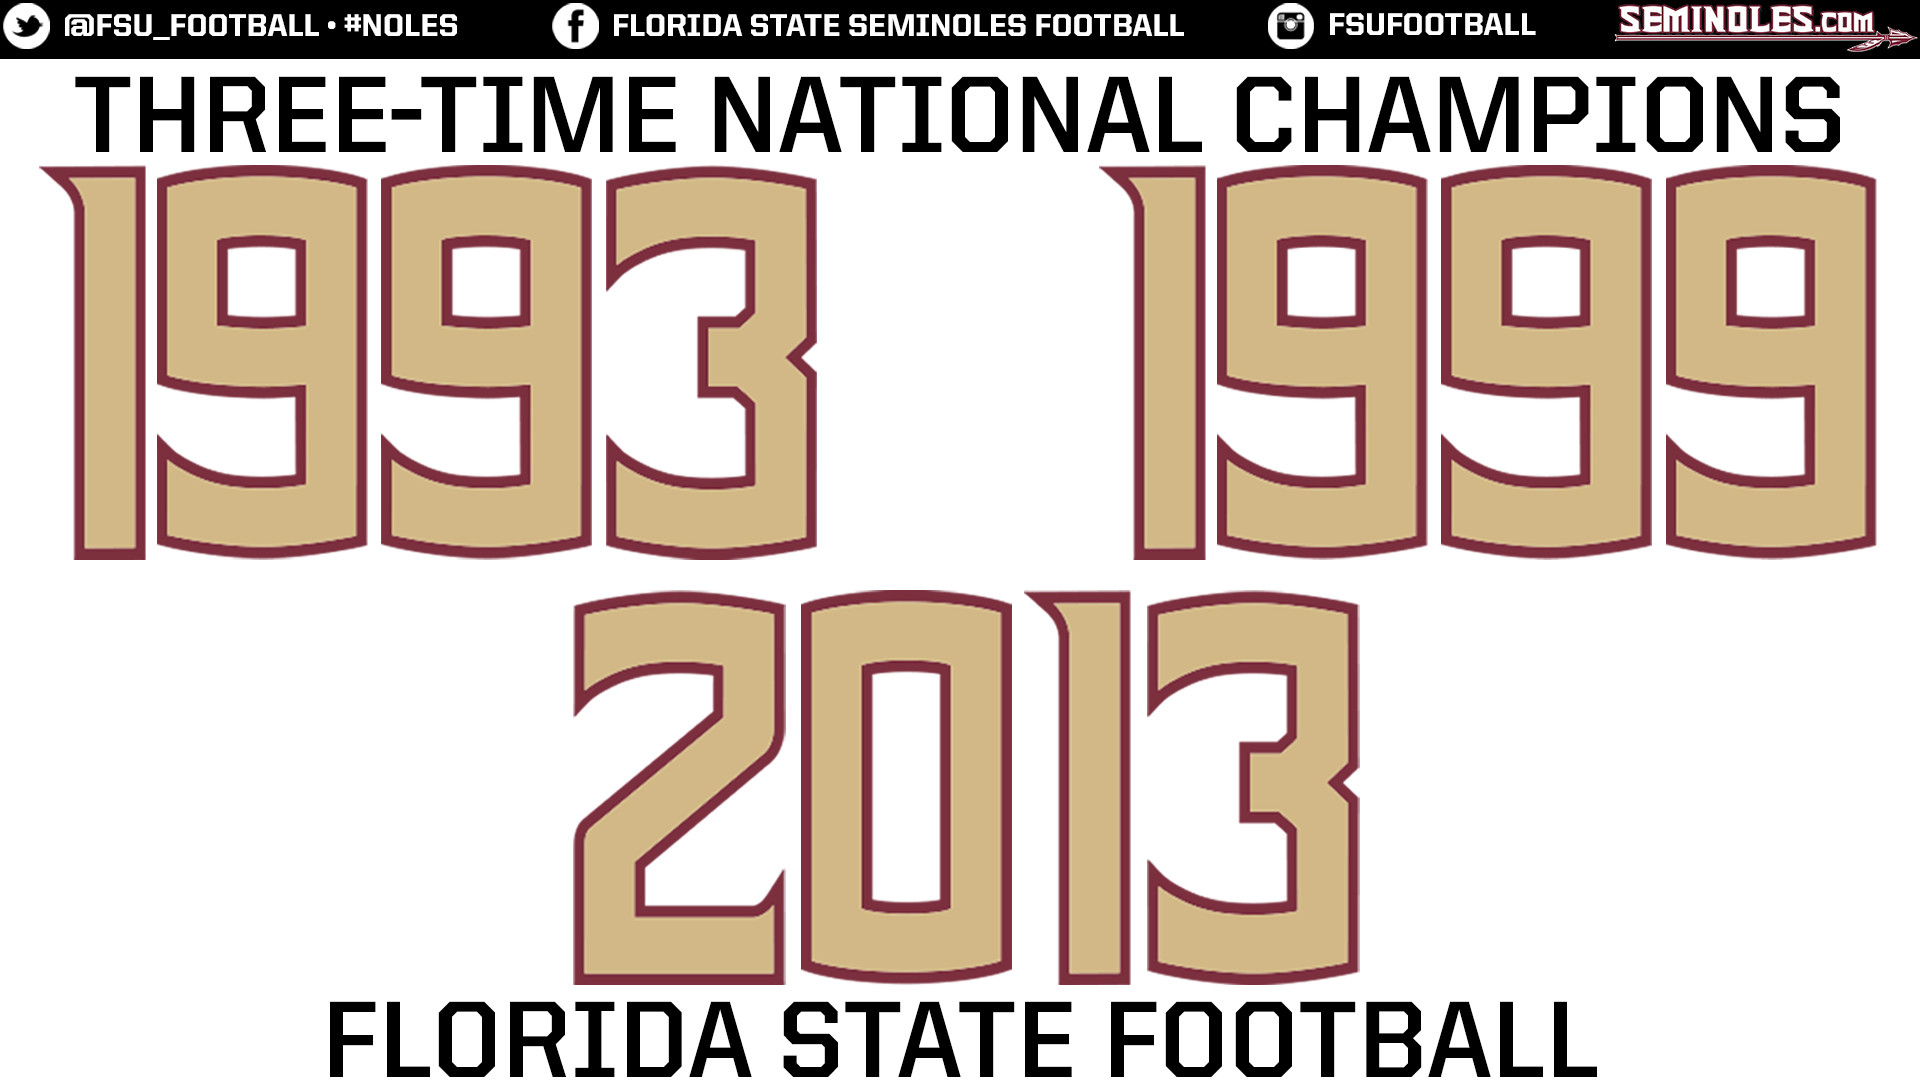 1920x1080 DESKTOP WALLPAPERS Florida State Seminoles Official Athletic Site 4